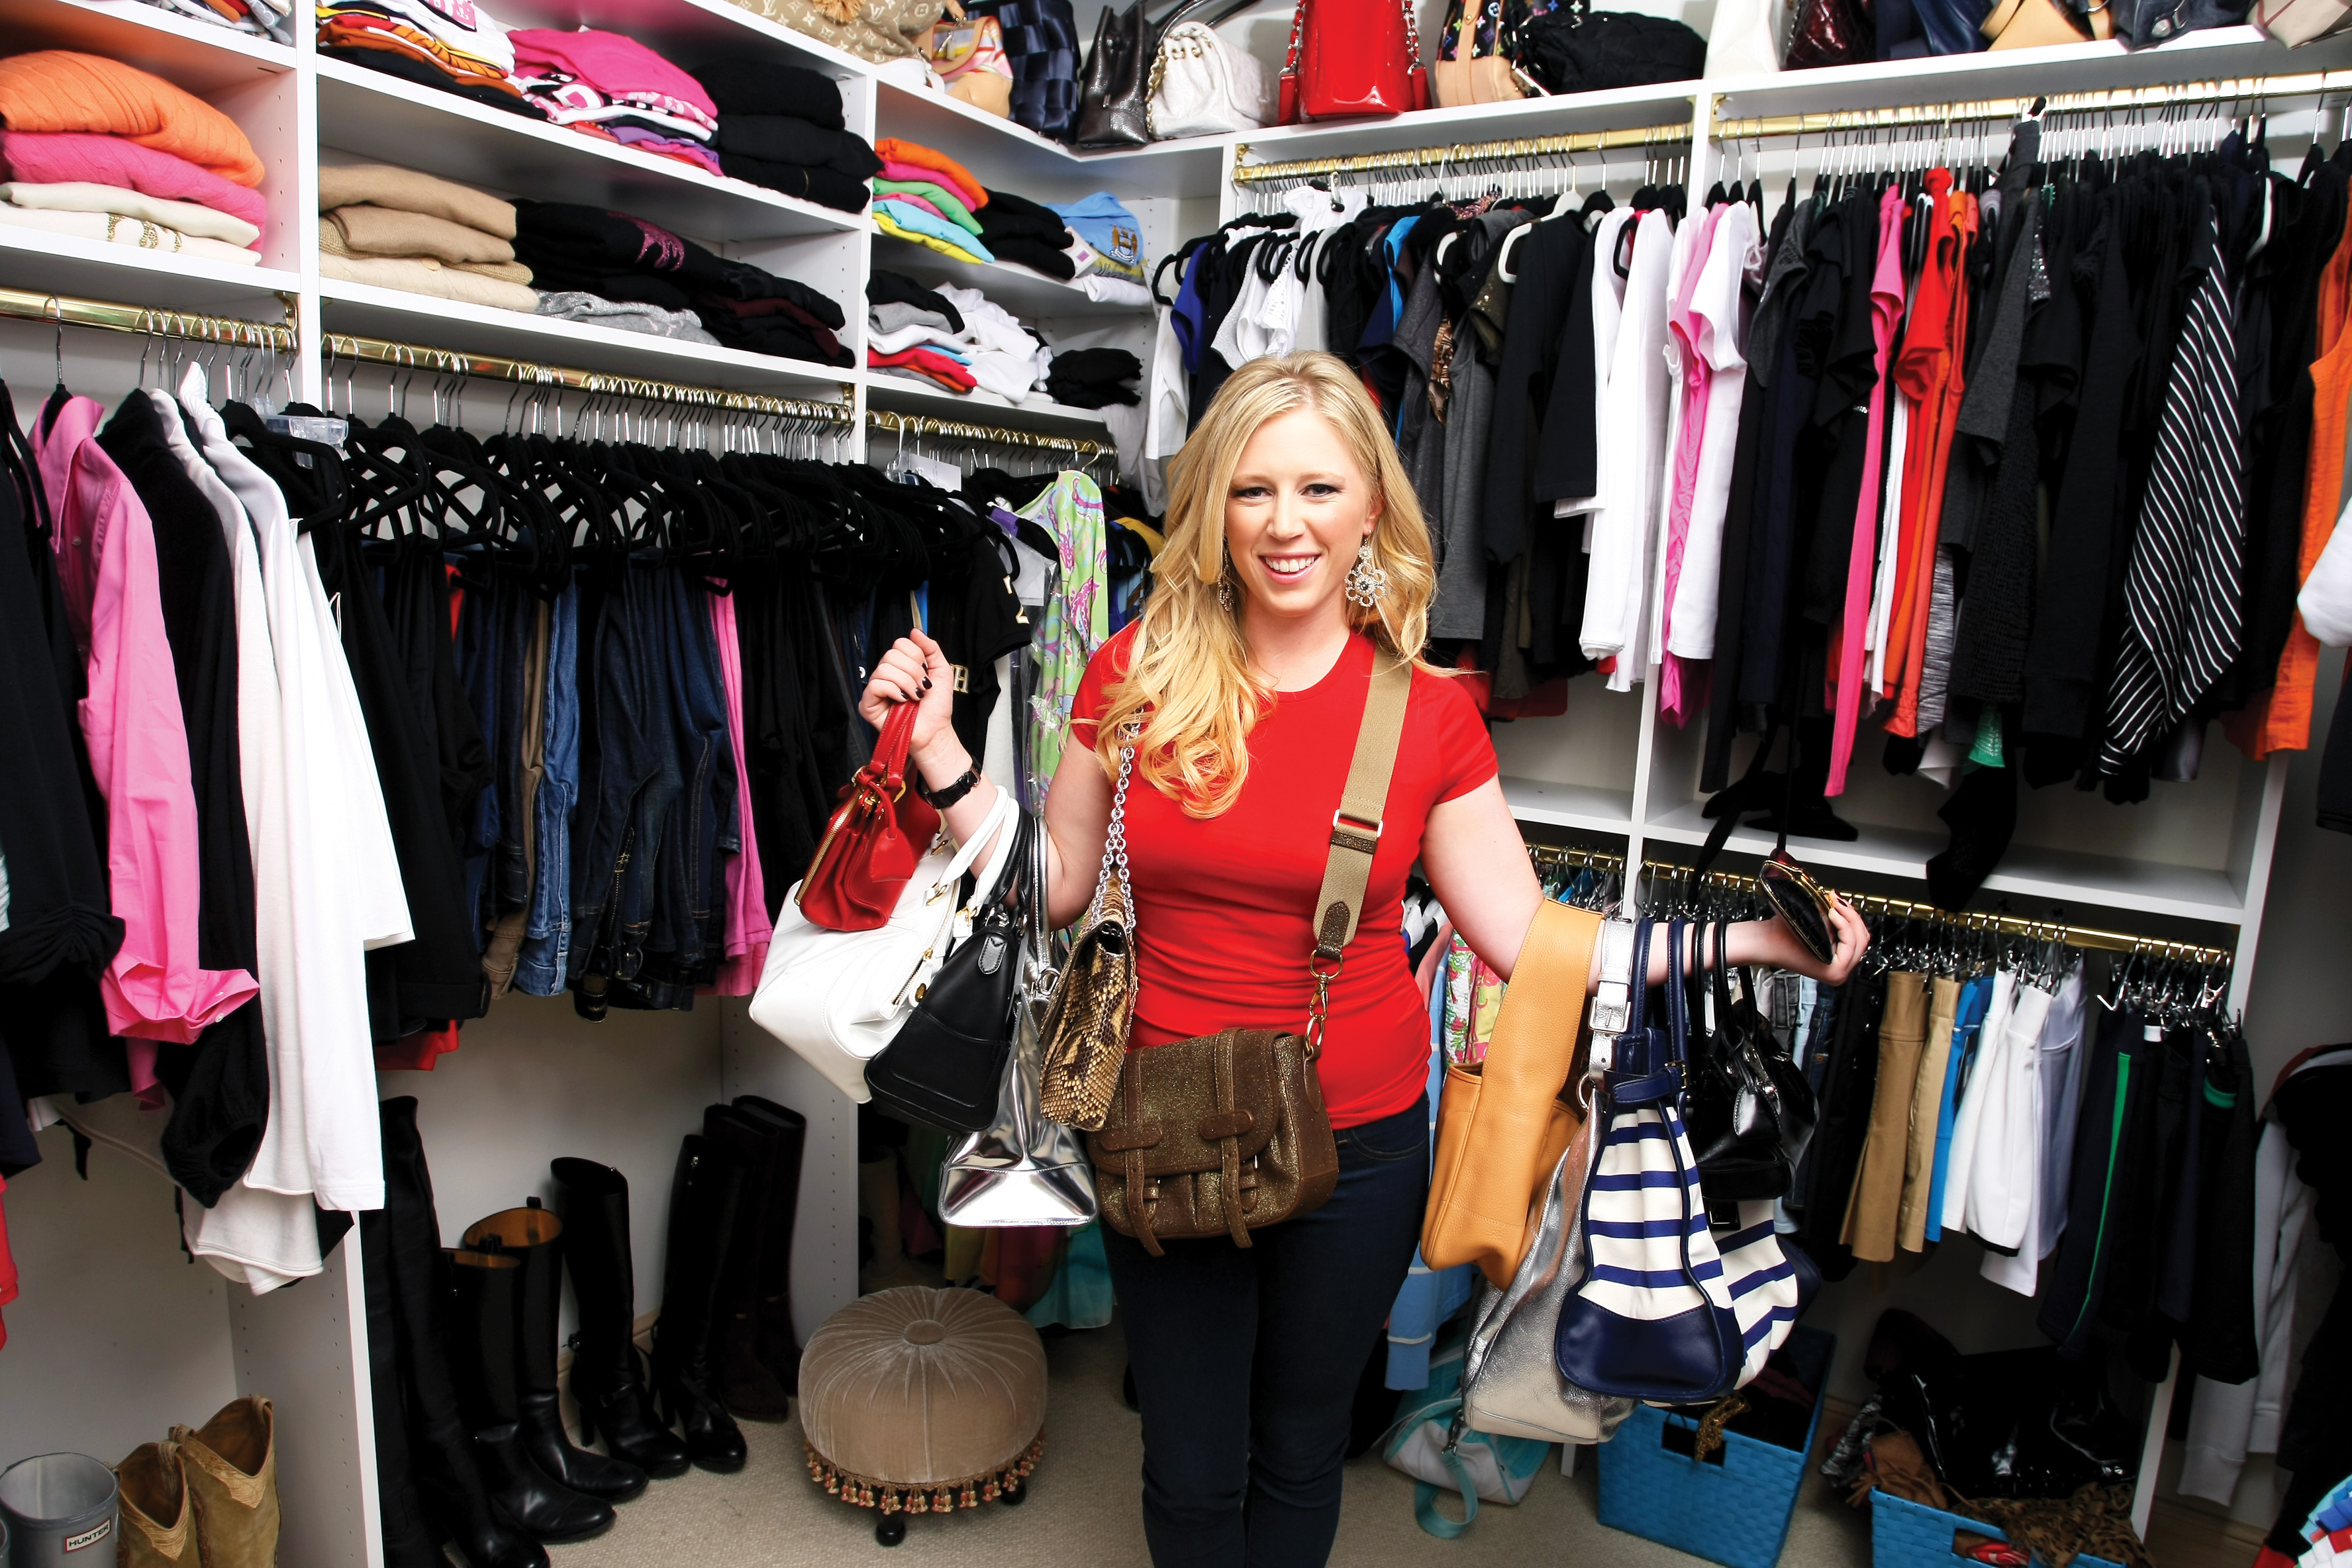 Morgan Pressel, at home in her closet.